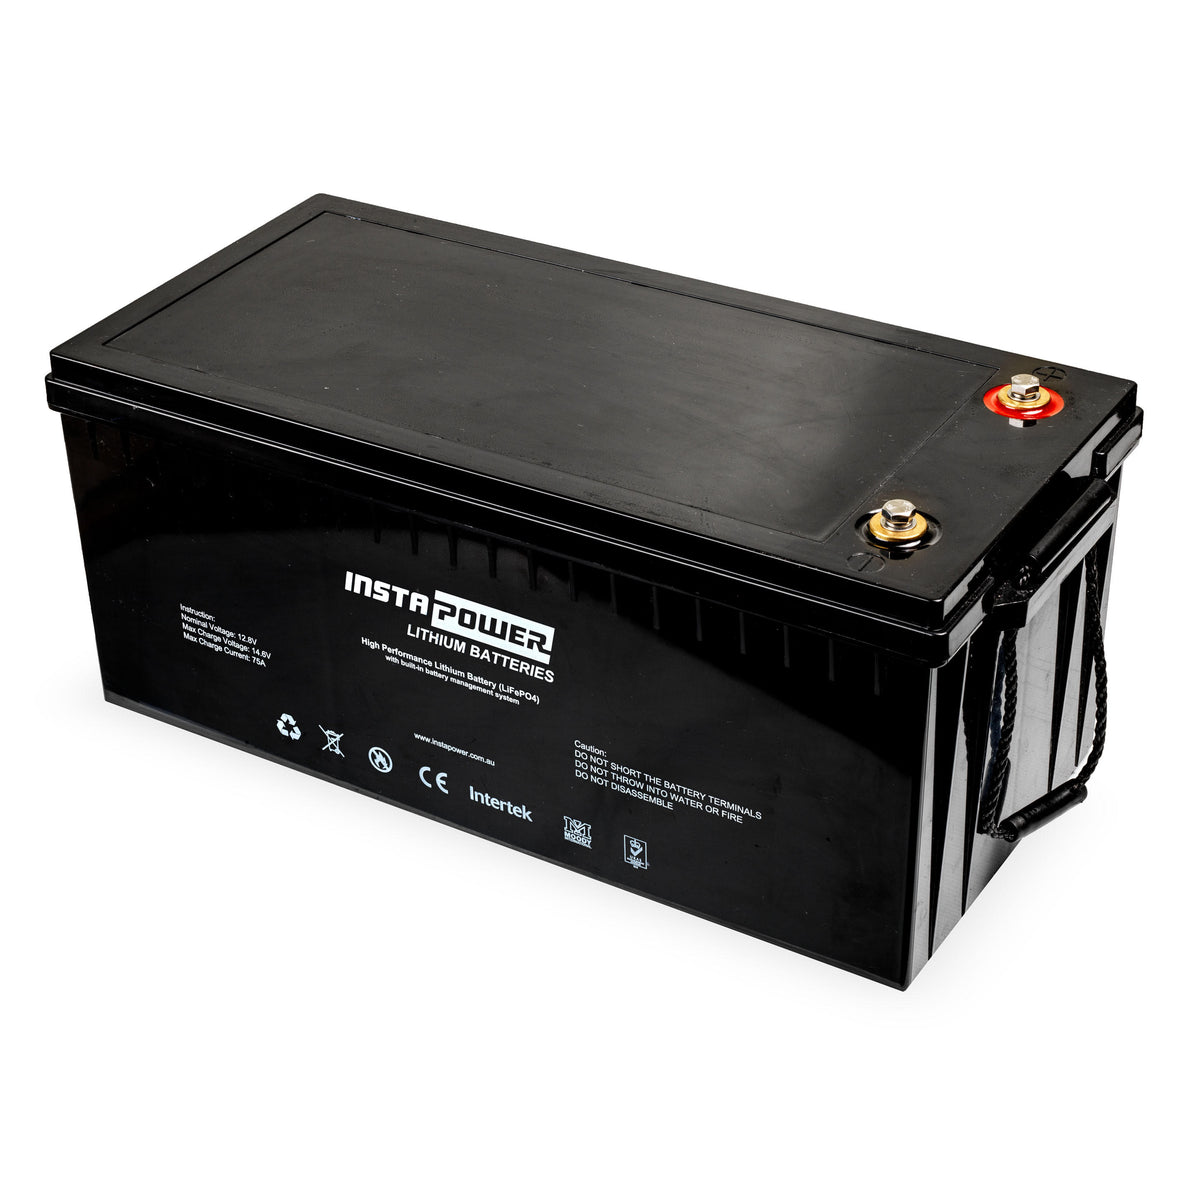 200Ah 12v Lithium Battery LiFePO4 InstaPower High Performance IP12200LFP